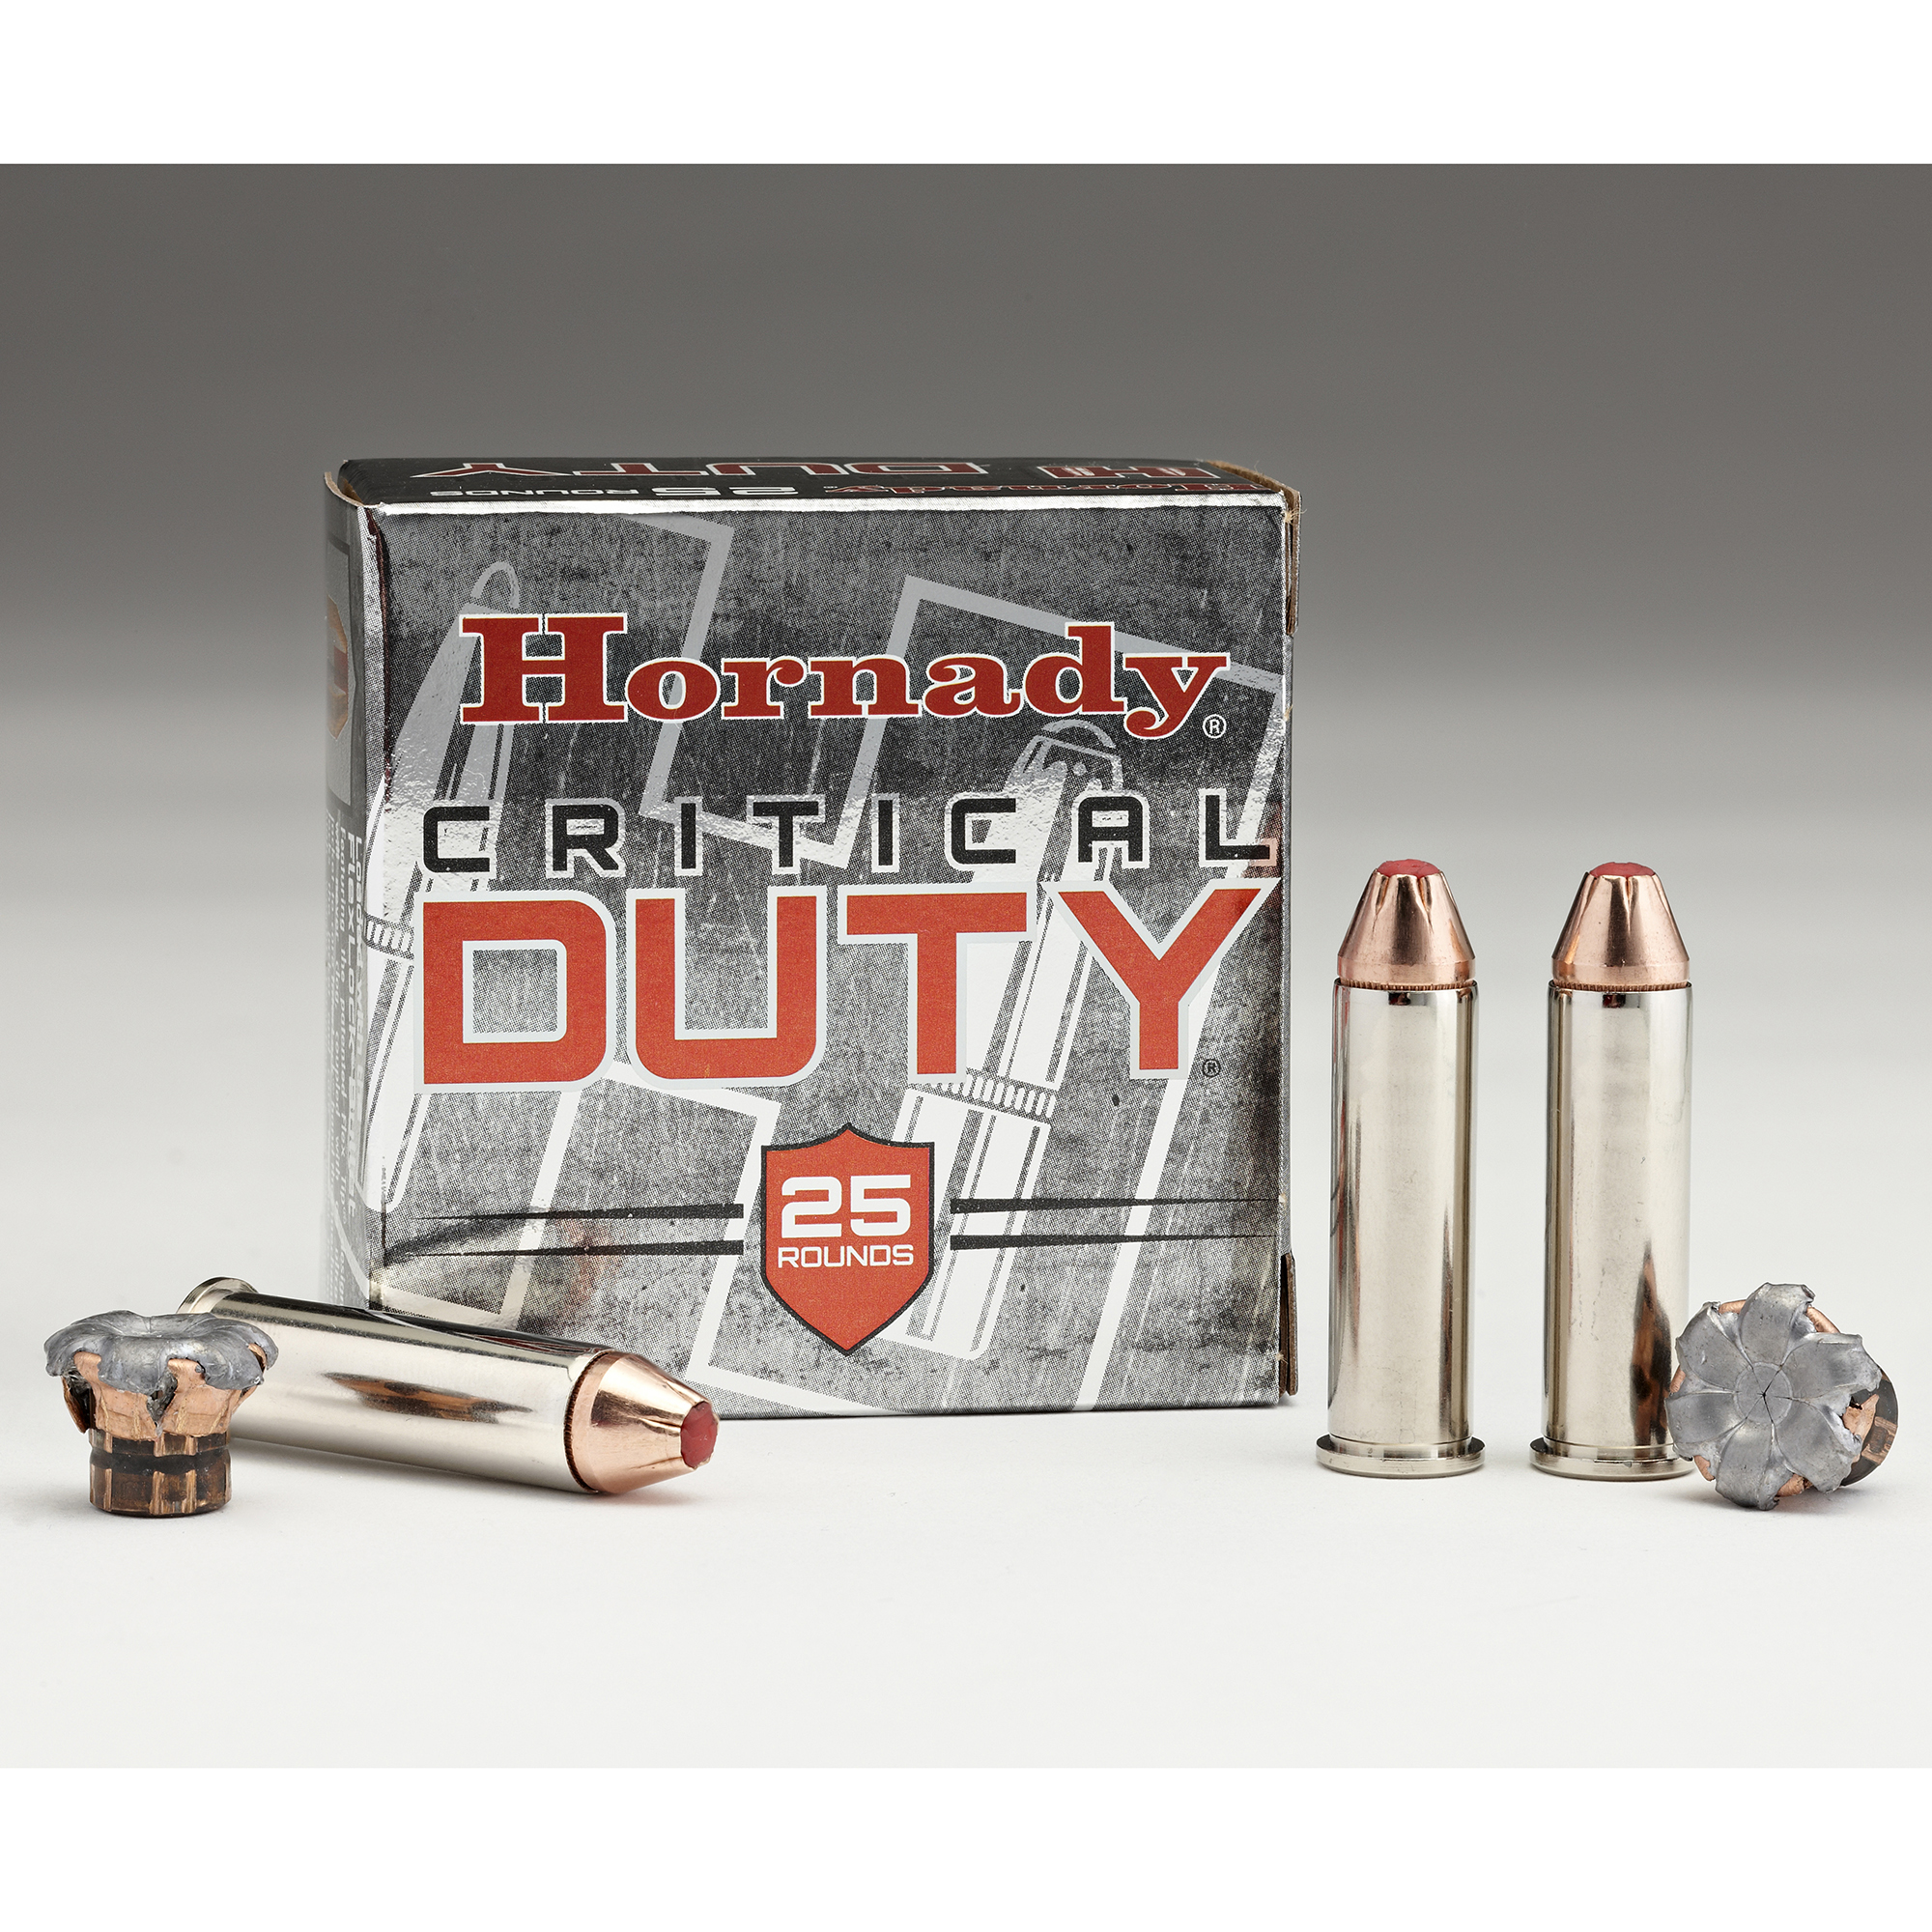 Hornady Critical Duty Ammo, 9mm, 135-gr, FlexLock, 25 Rounds